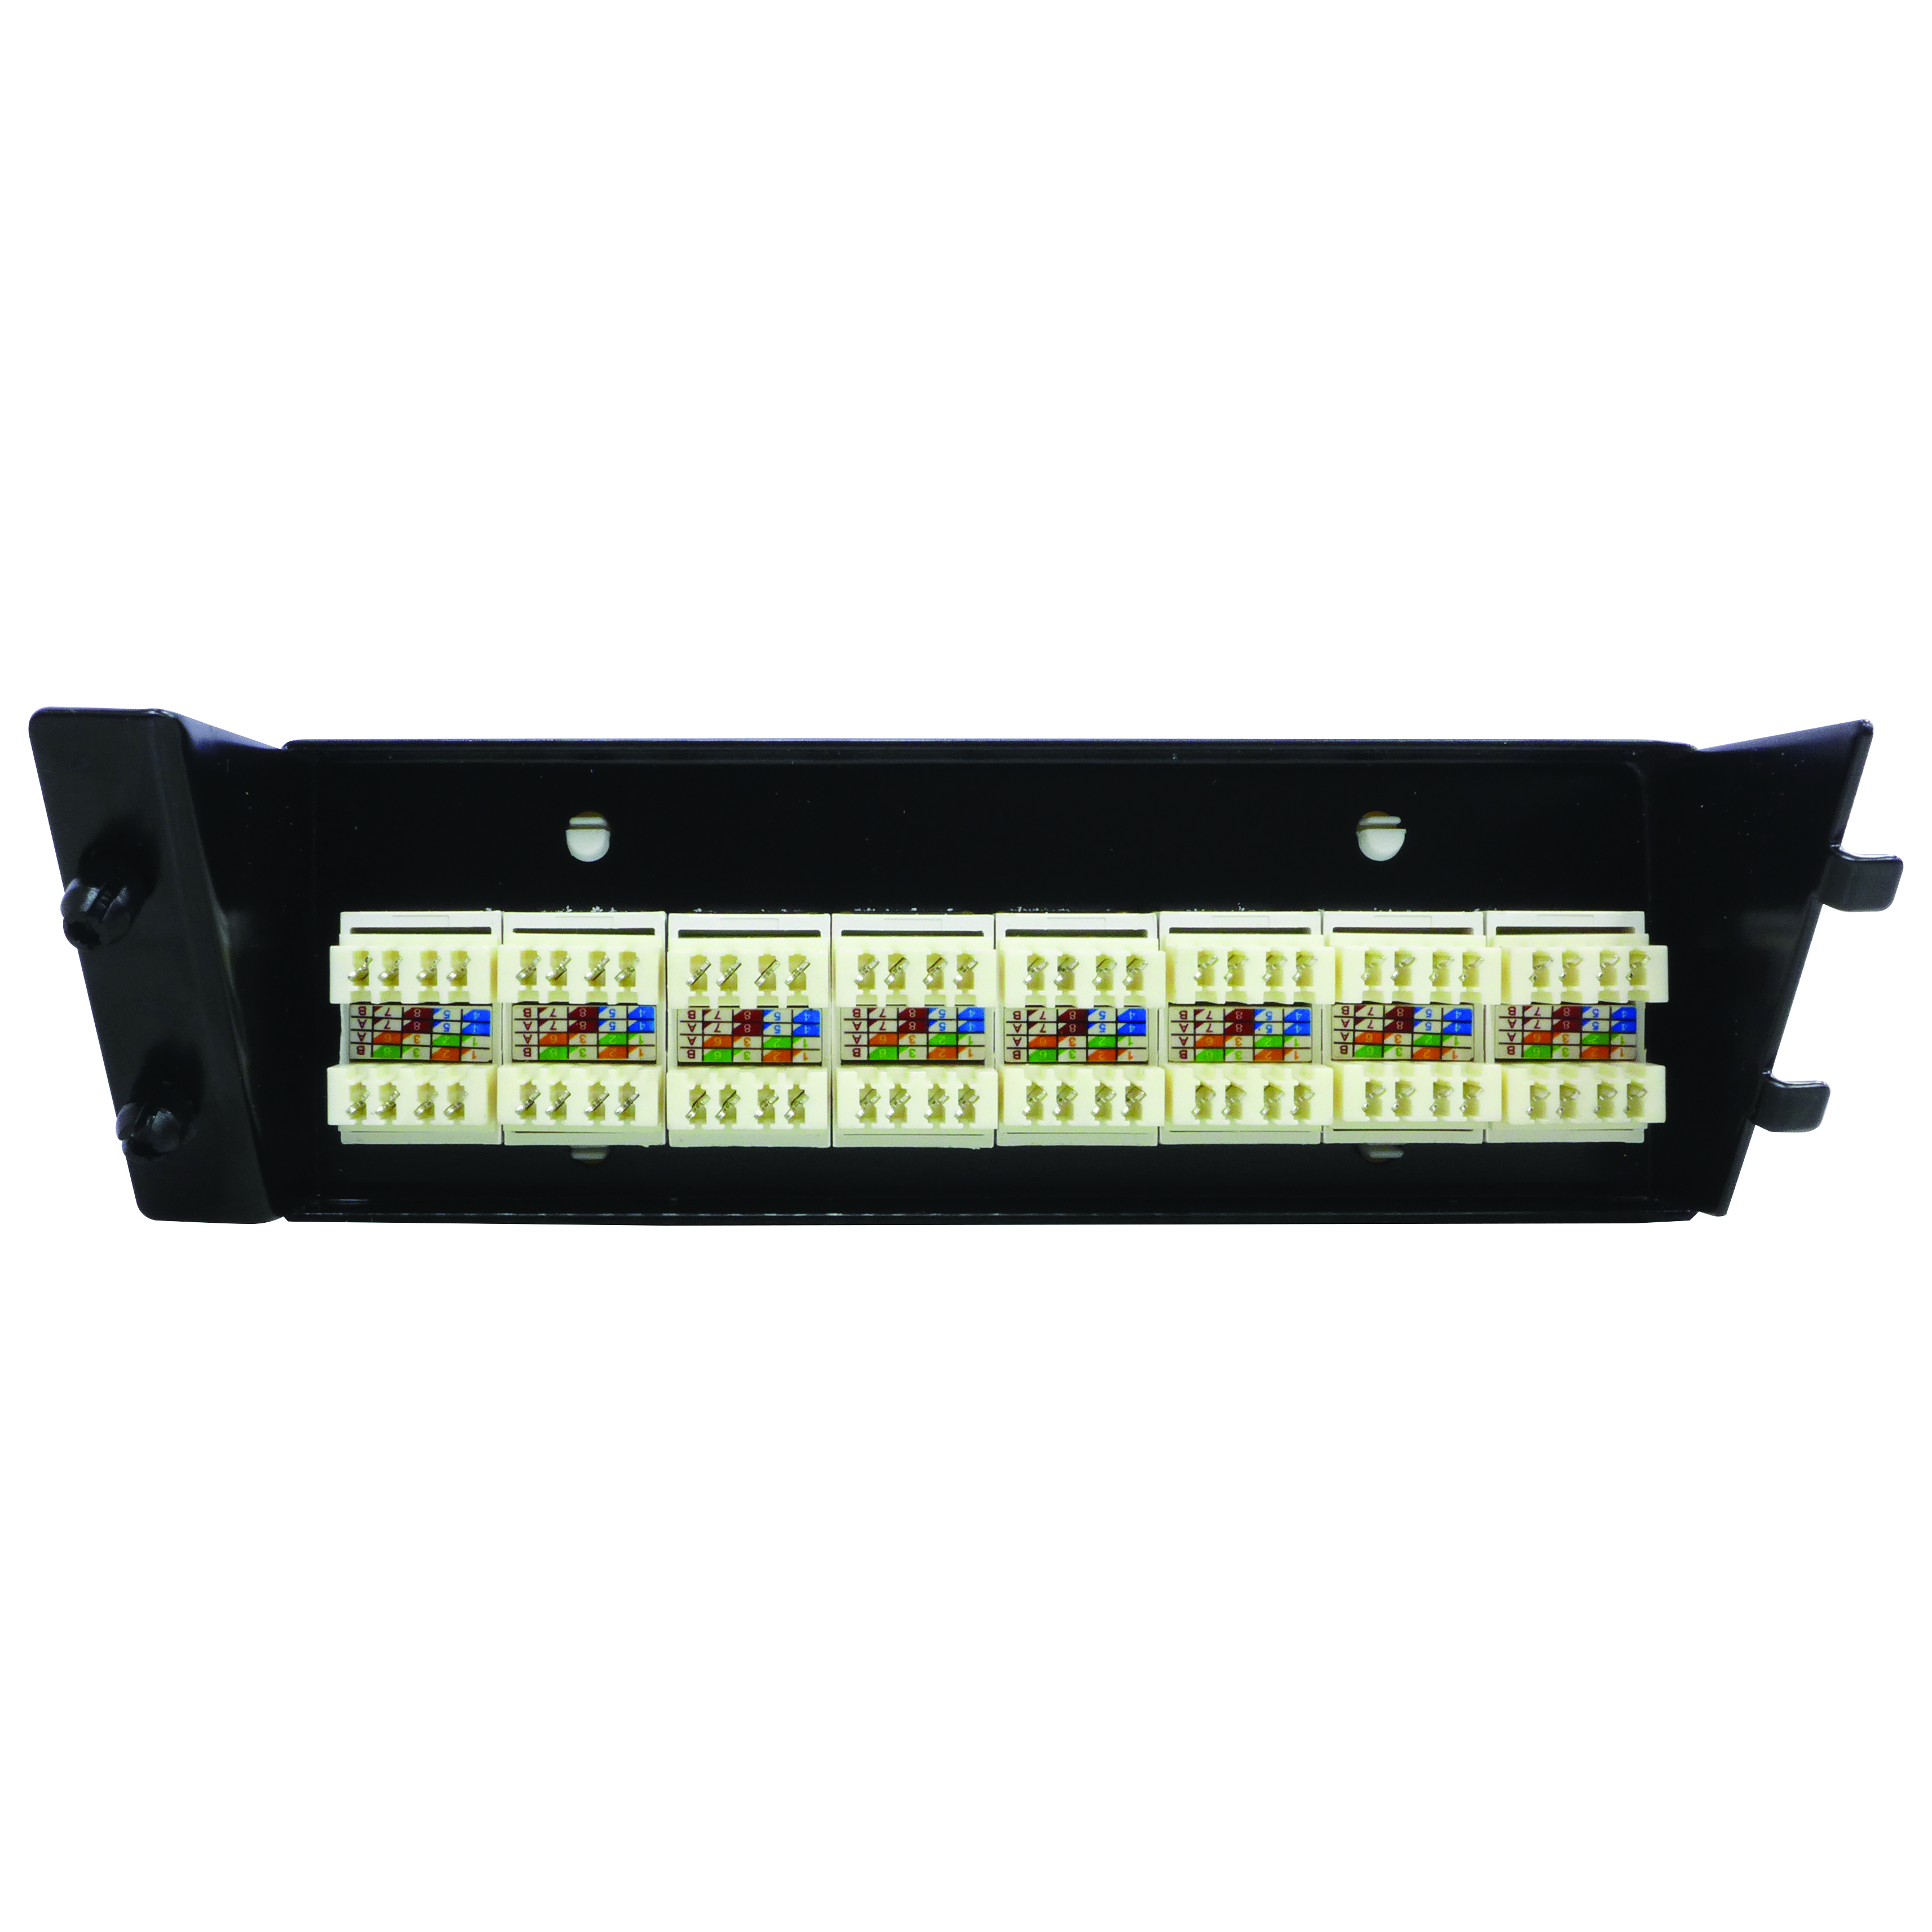 30MM-DHP08 - 8 Port Patch Panel for DigiHUB (CAT6) Back of Product Image